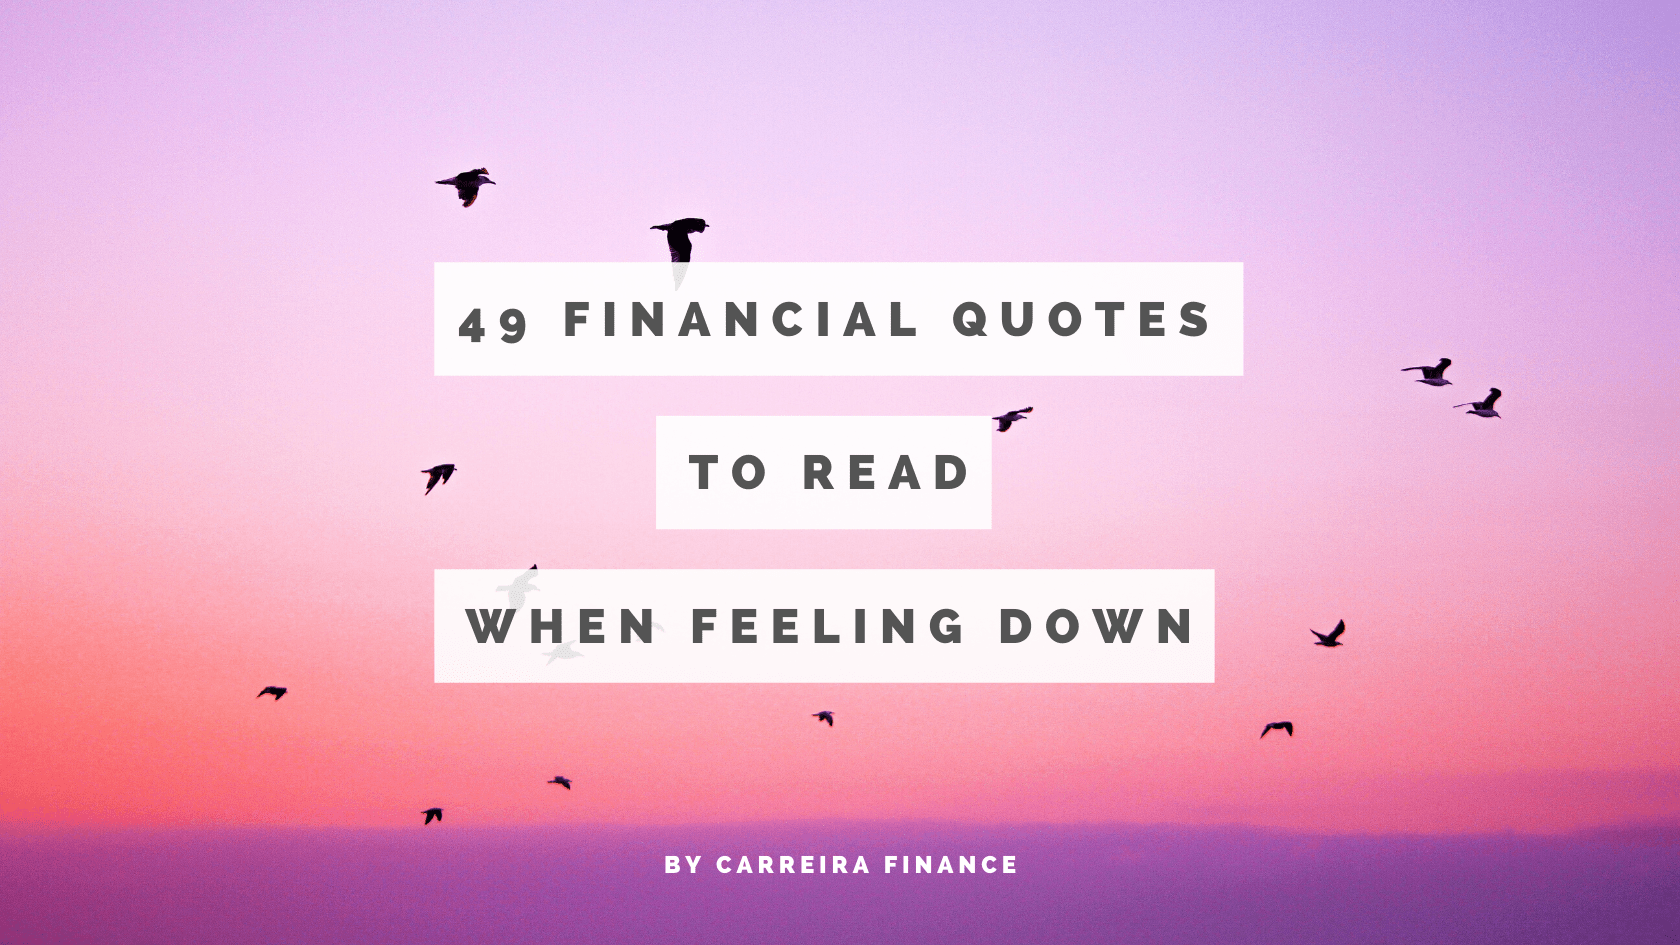 49 Financial Quotes To Read When Feeling Down - Carreira Finance Coaching